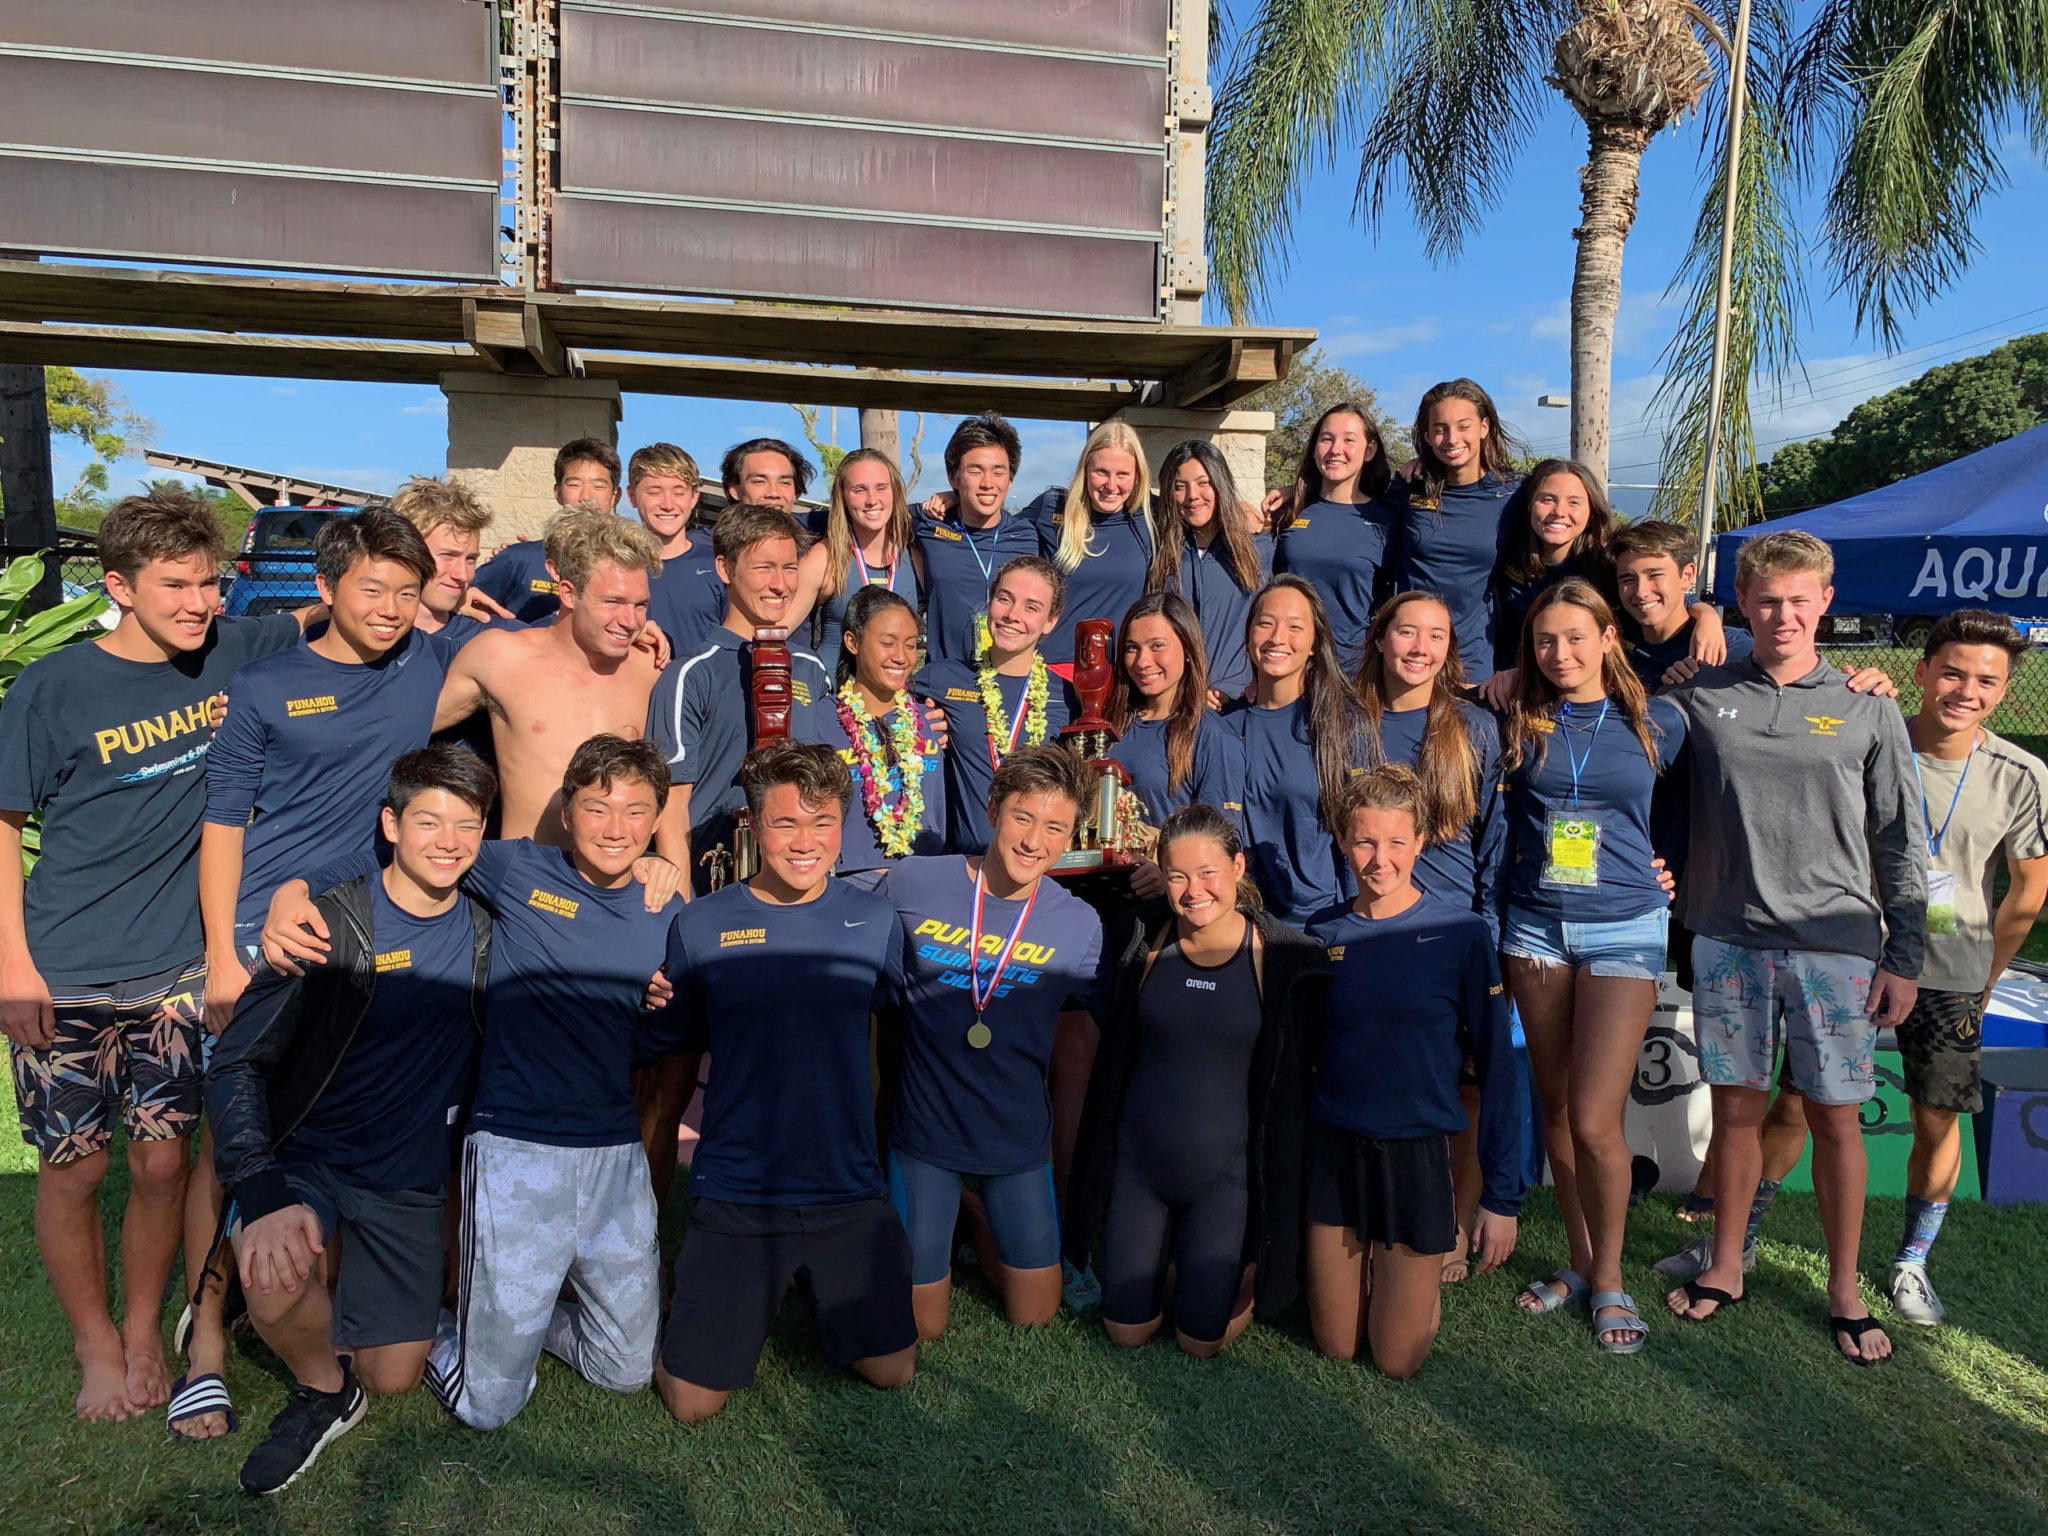 Christmas Break Hawaii Prep 2020 Barthel Breaks 11 Year Old State Record; Punahou Sweeps Hawaii States